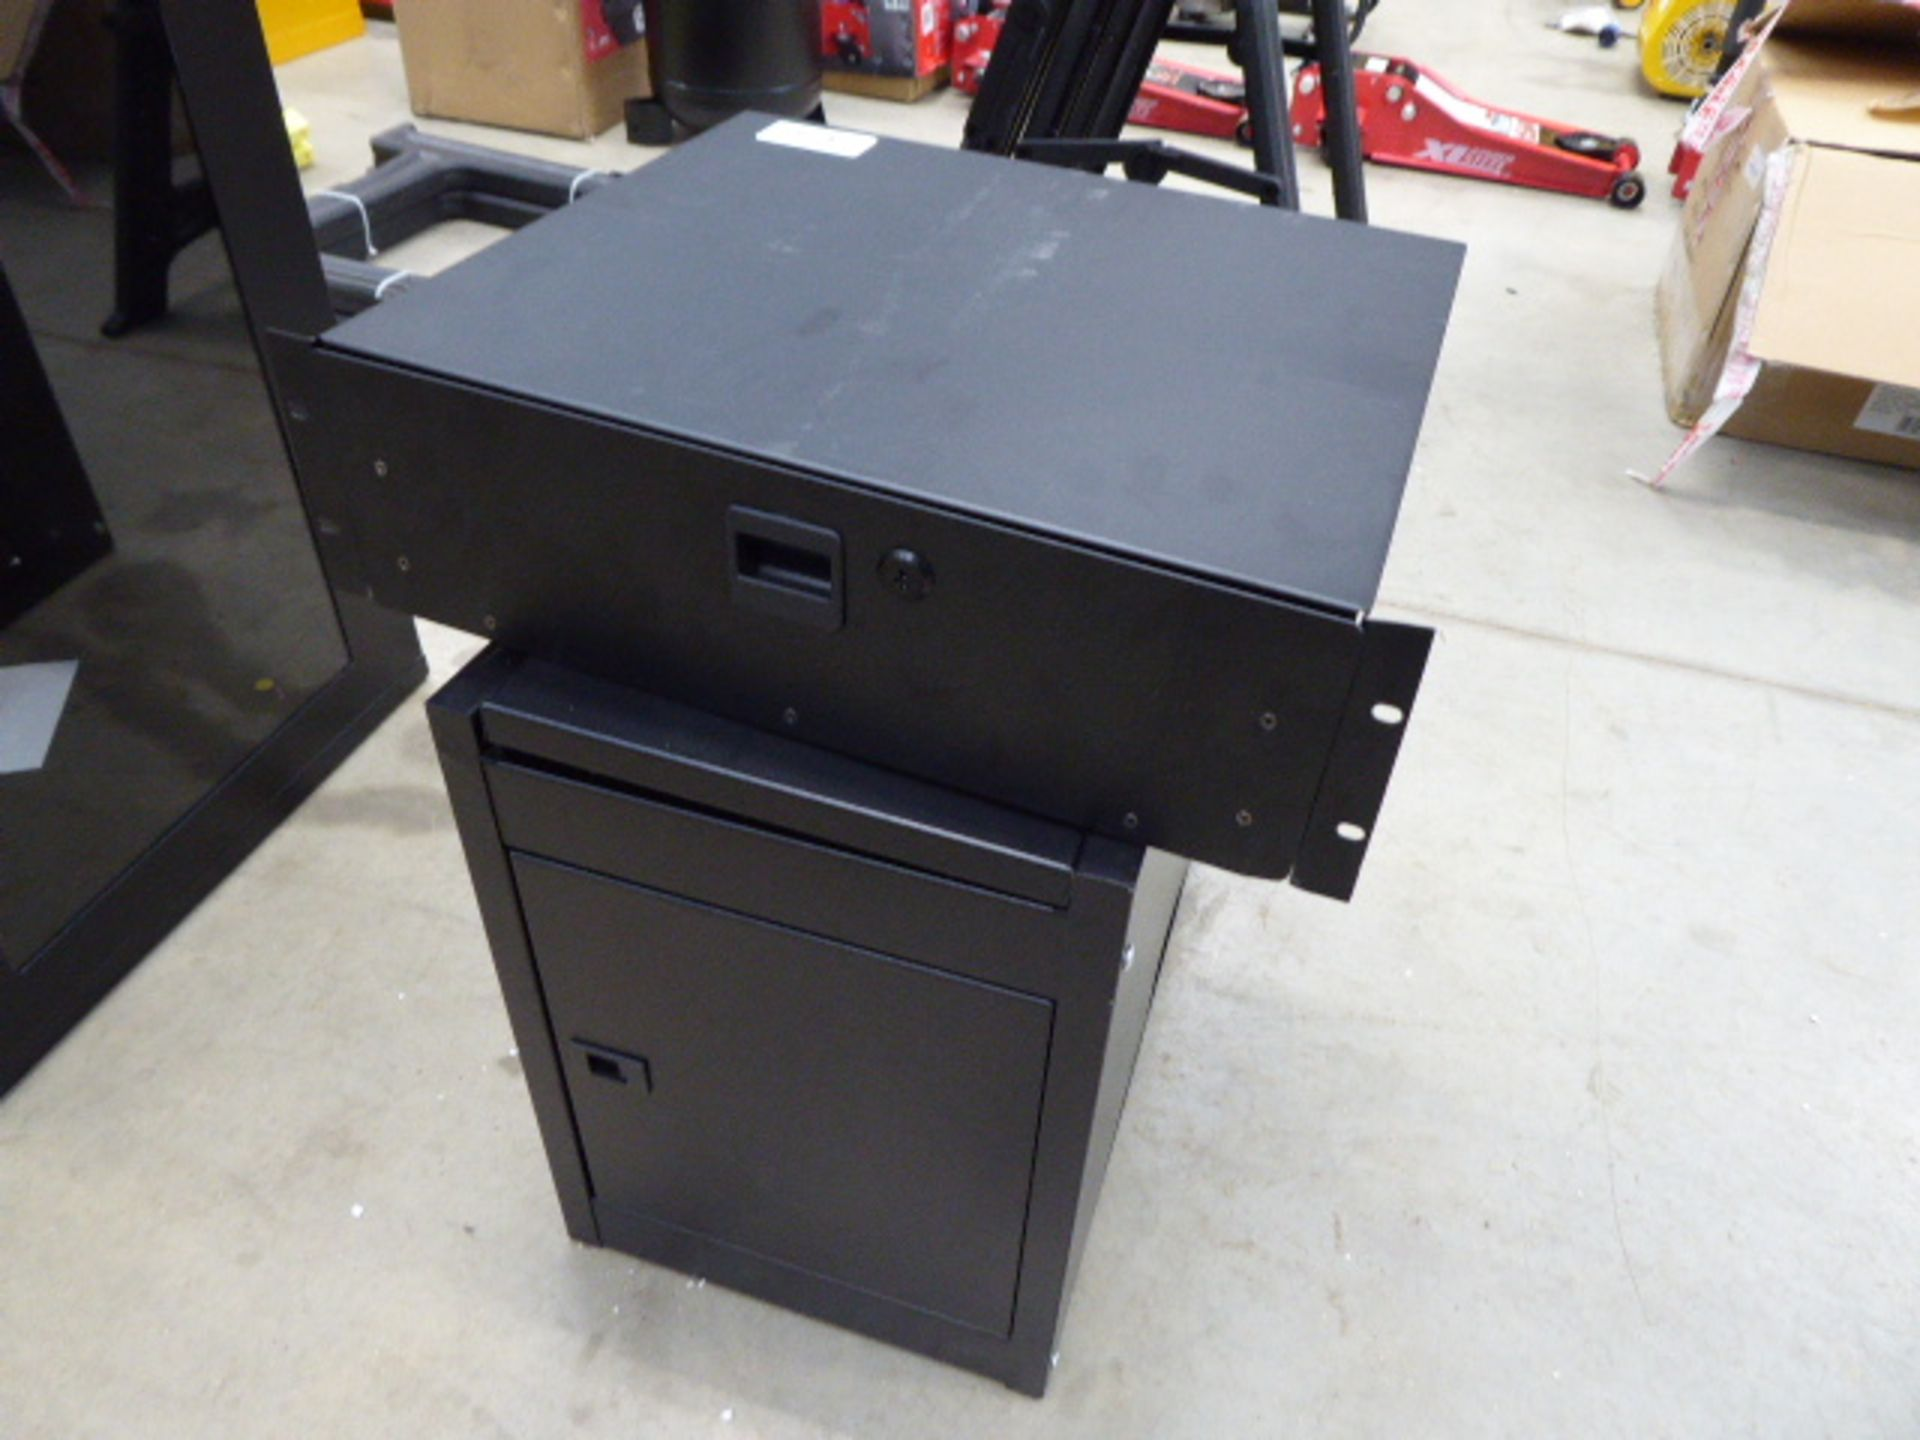 Small comms cabinet and 1 other